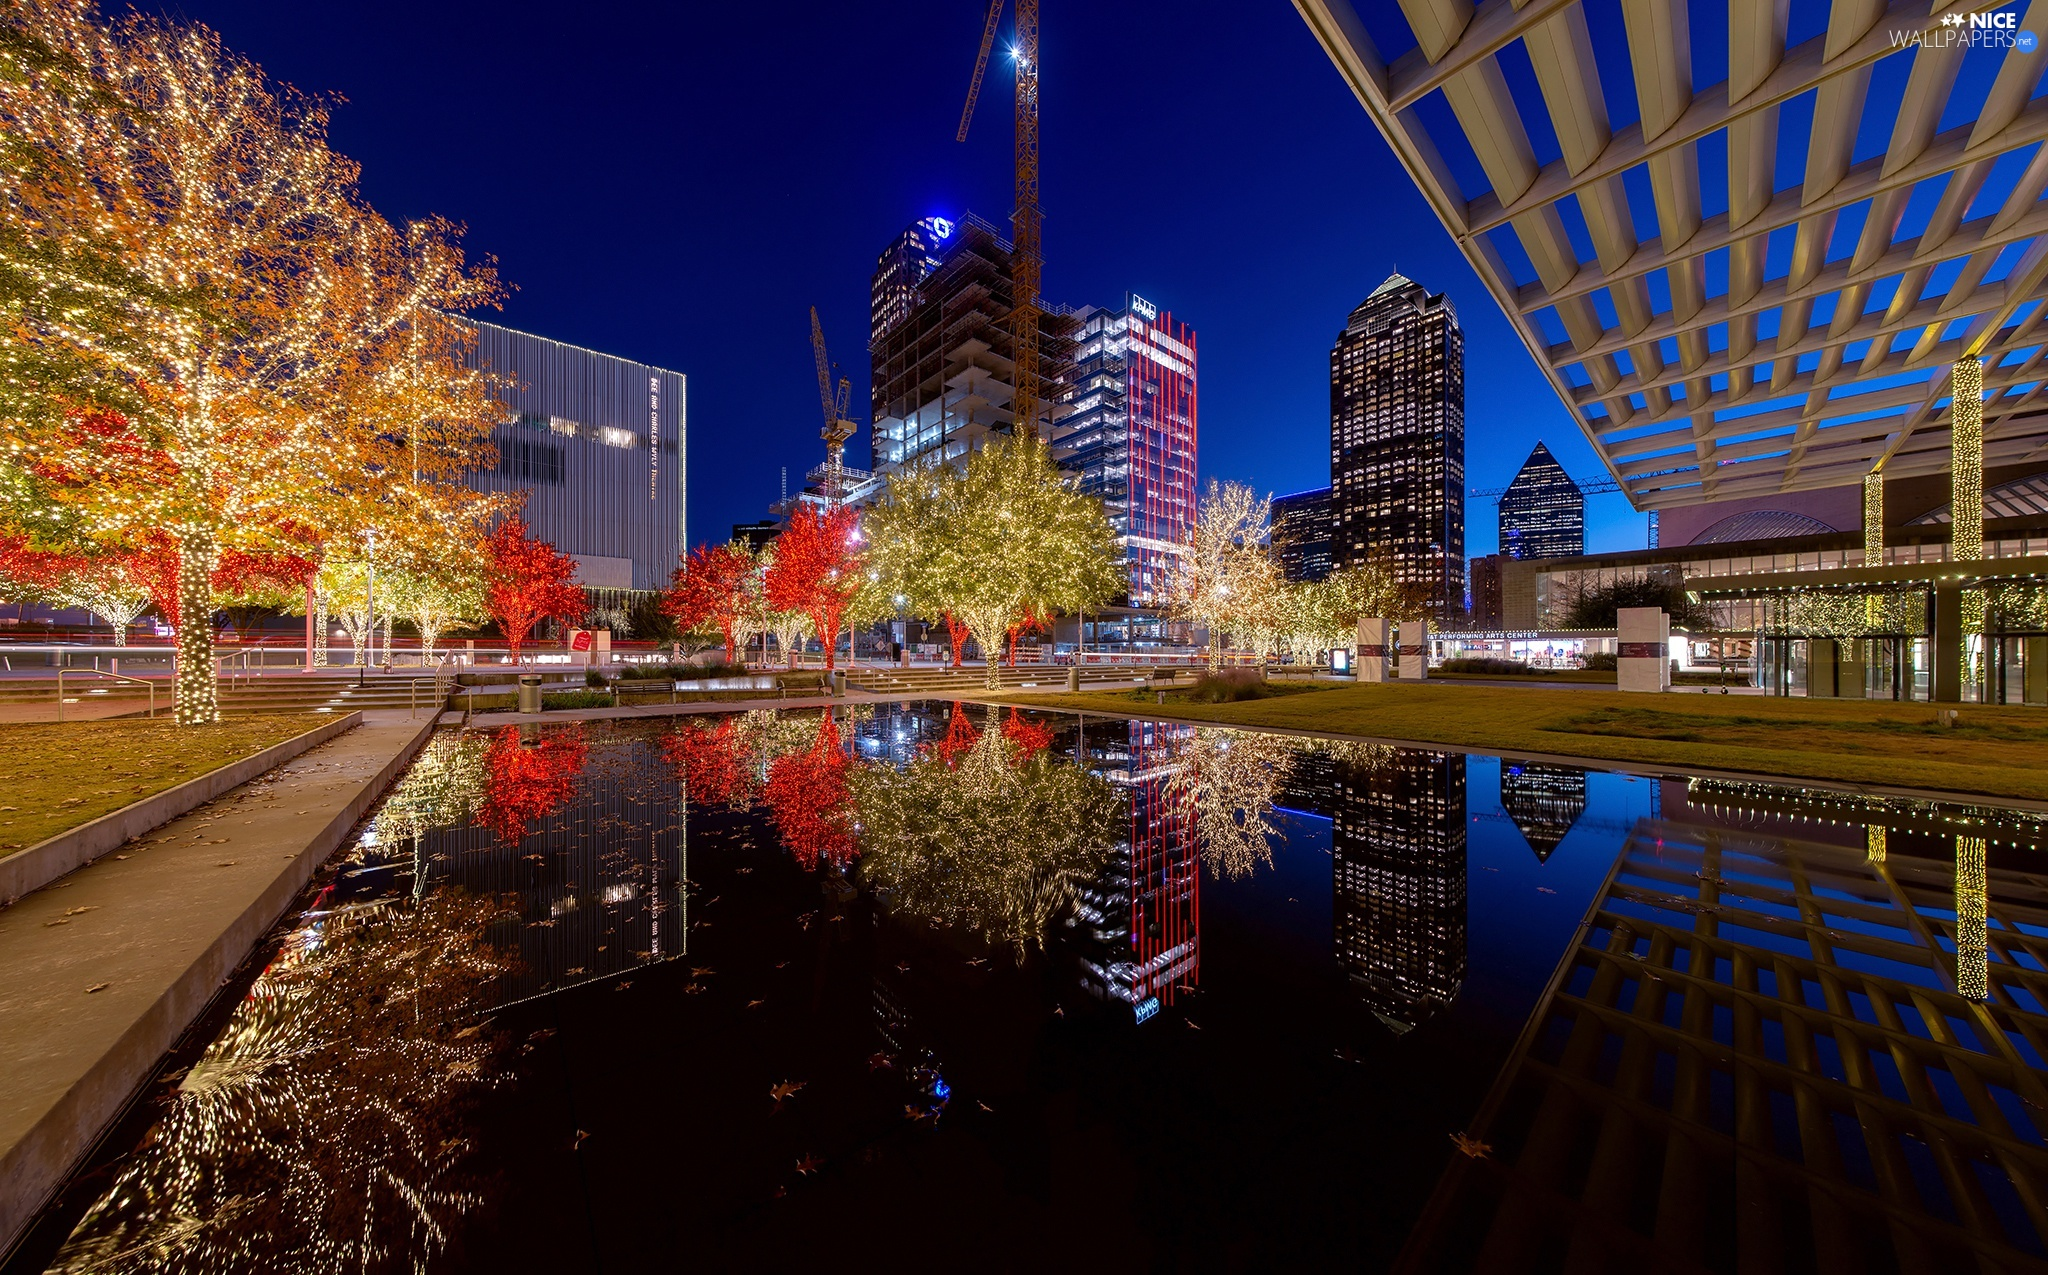 illuminated, Dallas, The United States, viewes, skyscrapers, City at Night, Teksas, Night, trees, pond